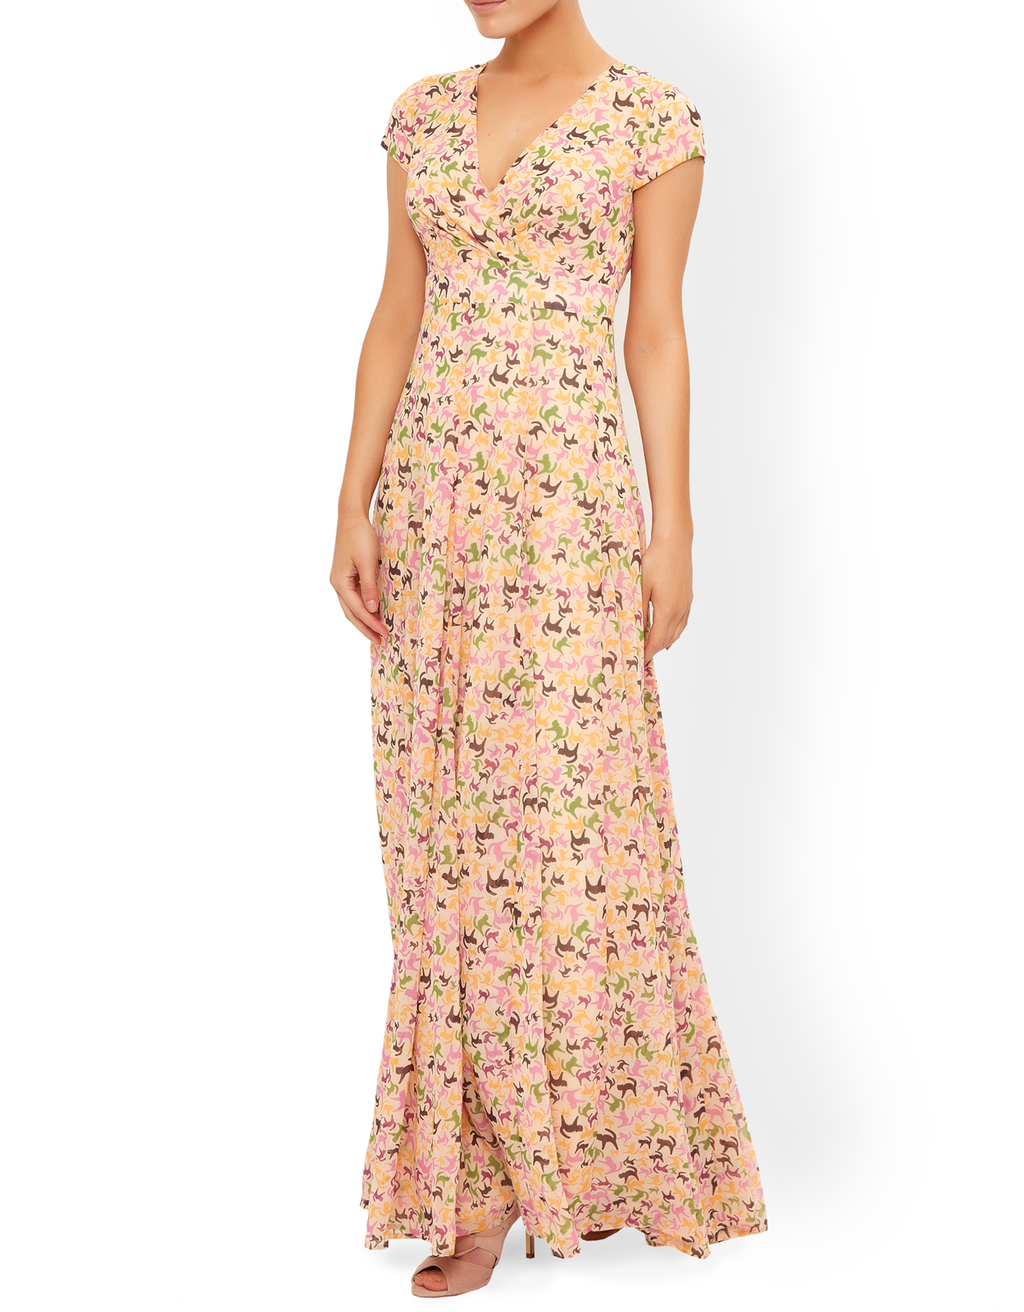 Anna Beatriz Maxi Dress - neckline: v-neck; sleeve style: capped; style: maxi dress; secondary colour: pink; predominant colour: nude; length: floor length; fit: body skimming; fibres: polyester/polyamide - 100%; occasions: occasion; sleeve length: short sleeve; pattern type: fabric; pattern size: standard; pattern: patterned/print; texture group: other - light to midweight; multicoloured: multicoloured; season: s/s 2016; wardrobe: event